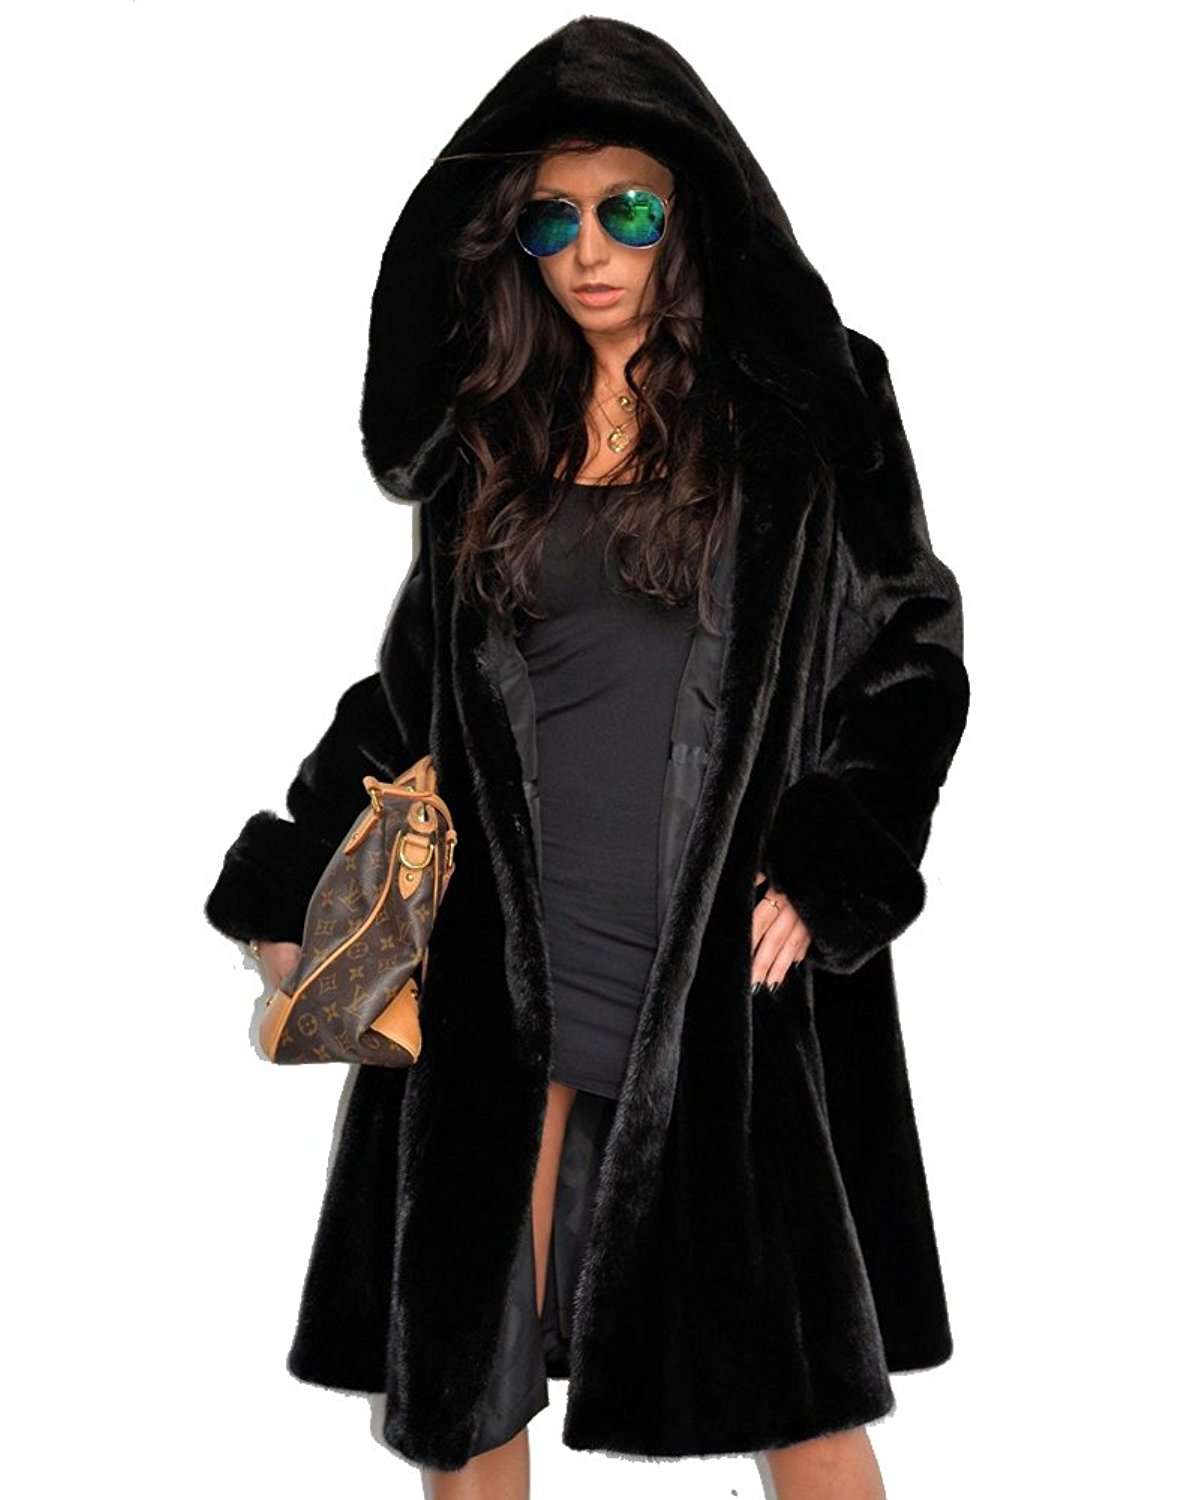 84015c900f1 Get Quotations · Aox Women Winter Coat Faux Fur Jacket Casual Long Parka  Outdoor Outerwear Black Winter Top Plus